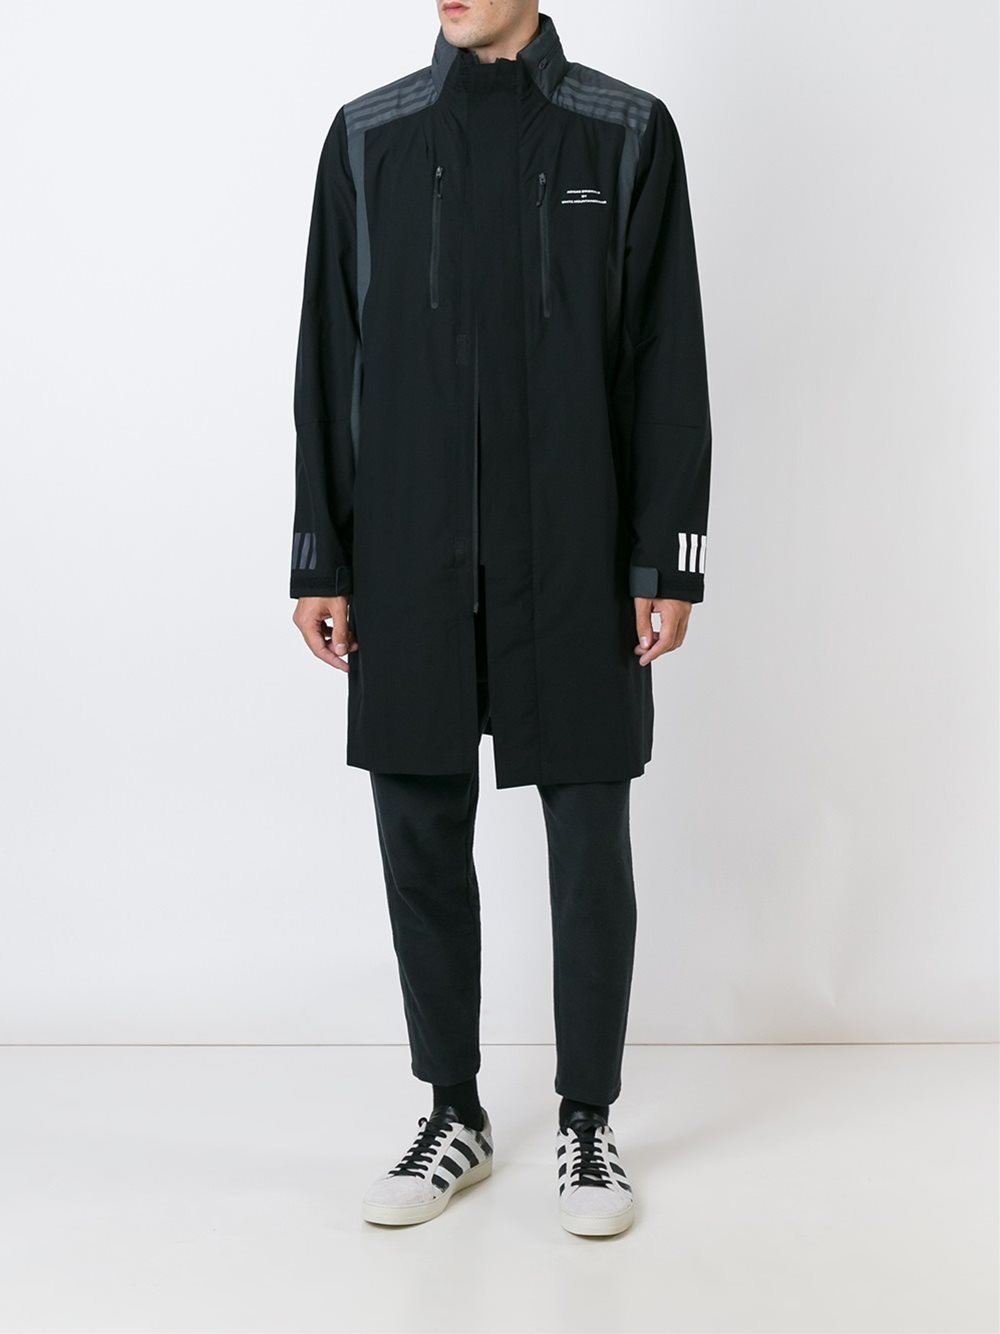 8a8882d202ff Lyst - adidas Originals Adidas X White Mountaineering Long Coat in ...